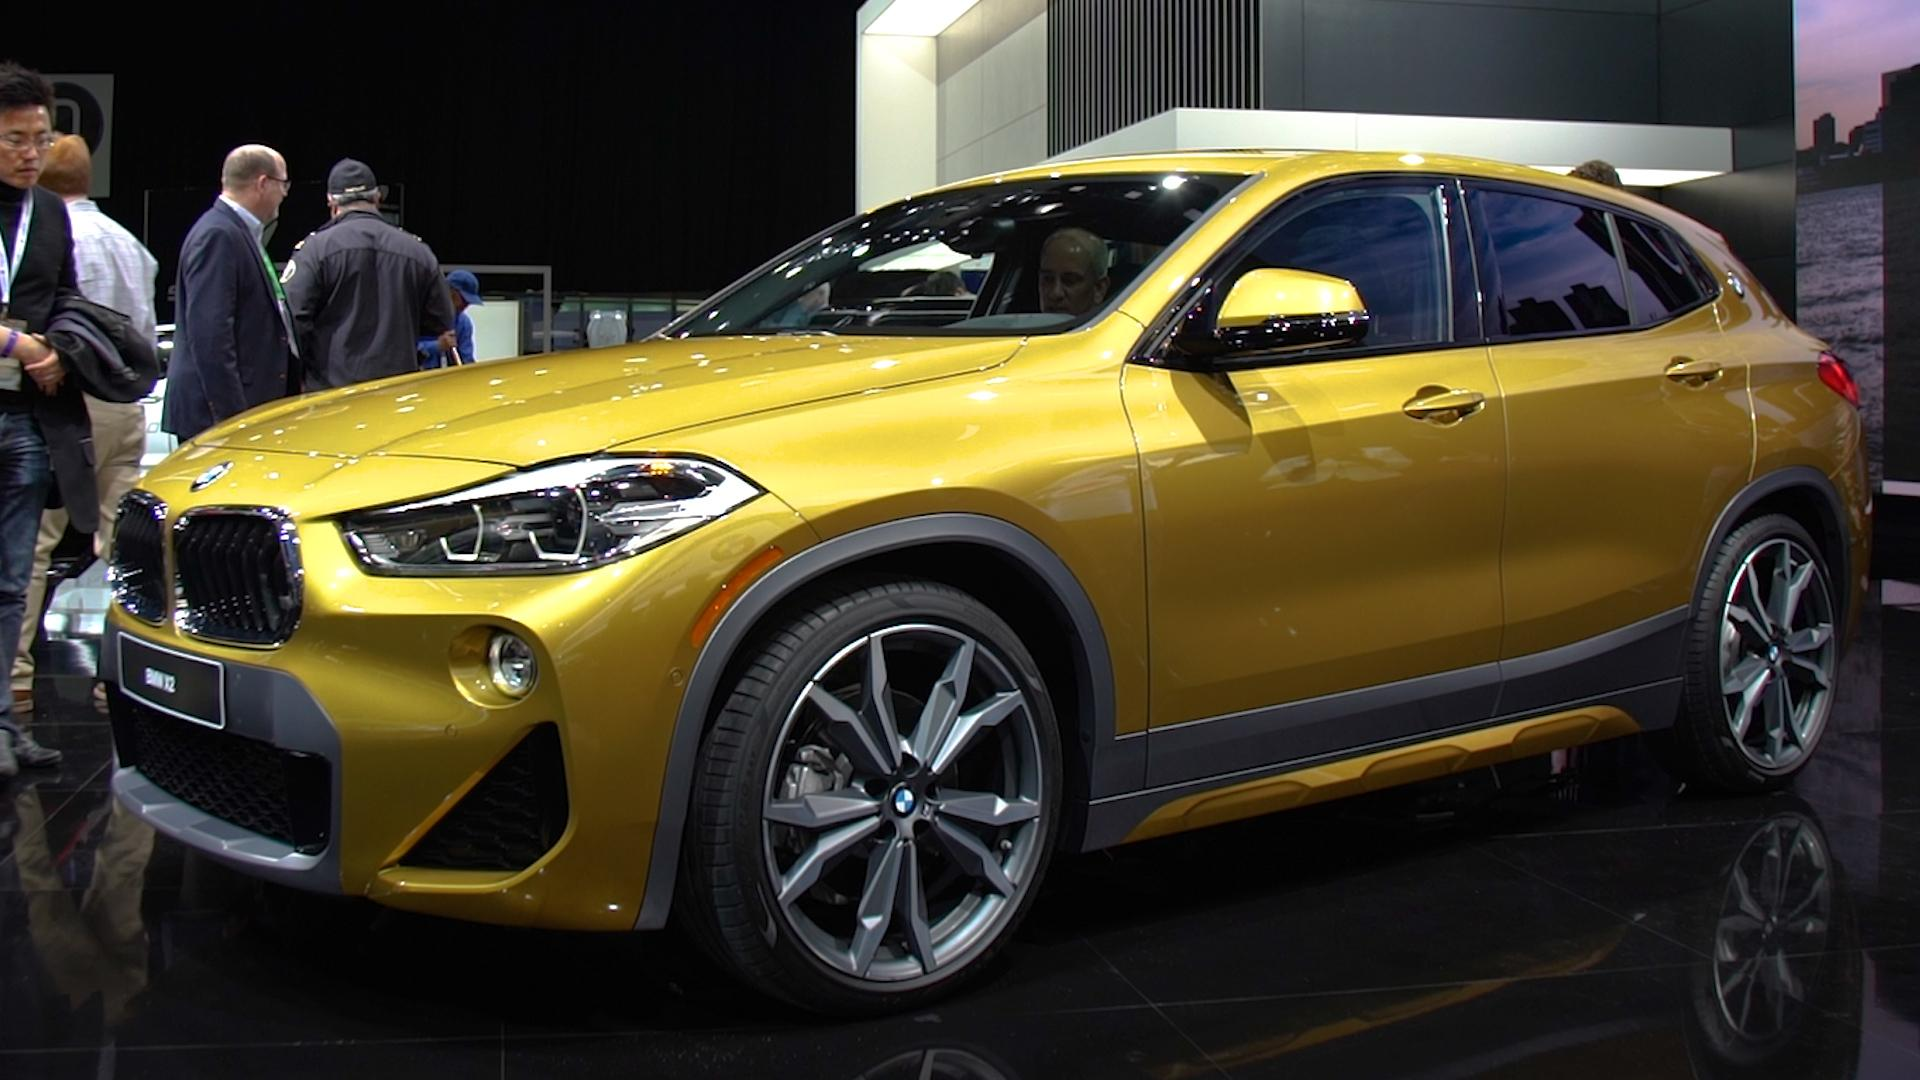 2018 Bmw X2 Is Smaller Sportier Take On X1 Suv Consumer